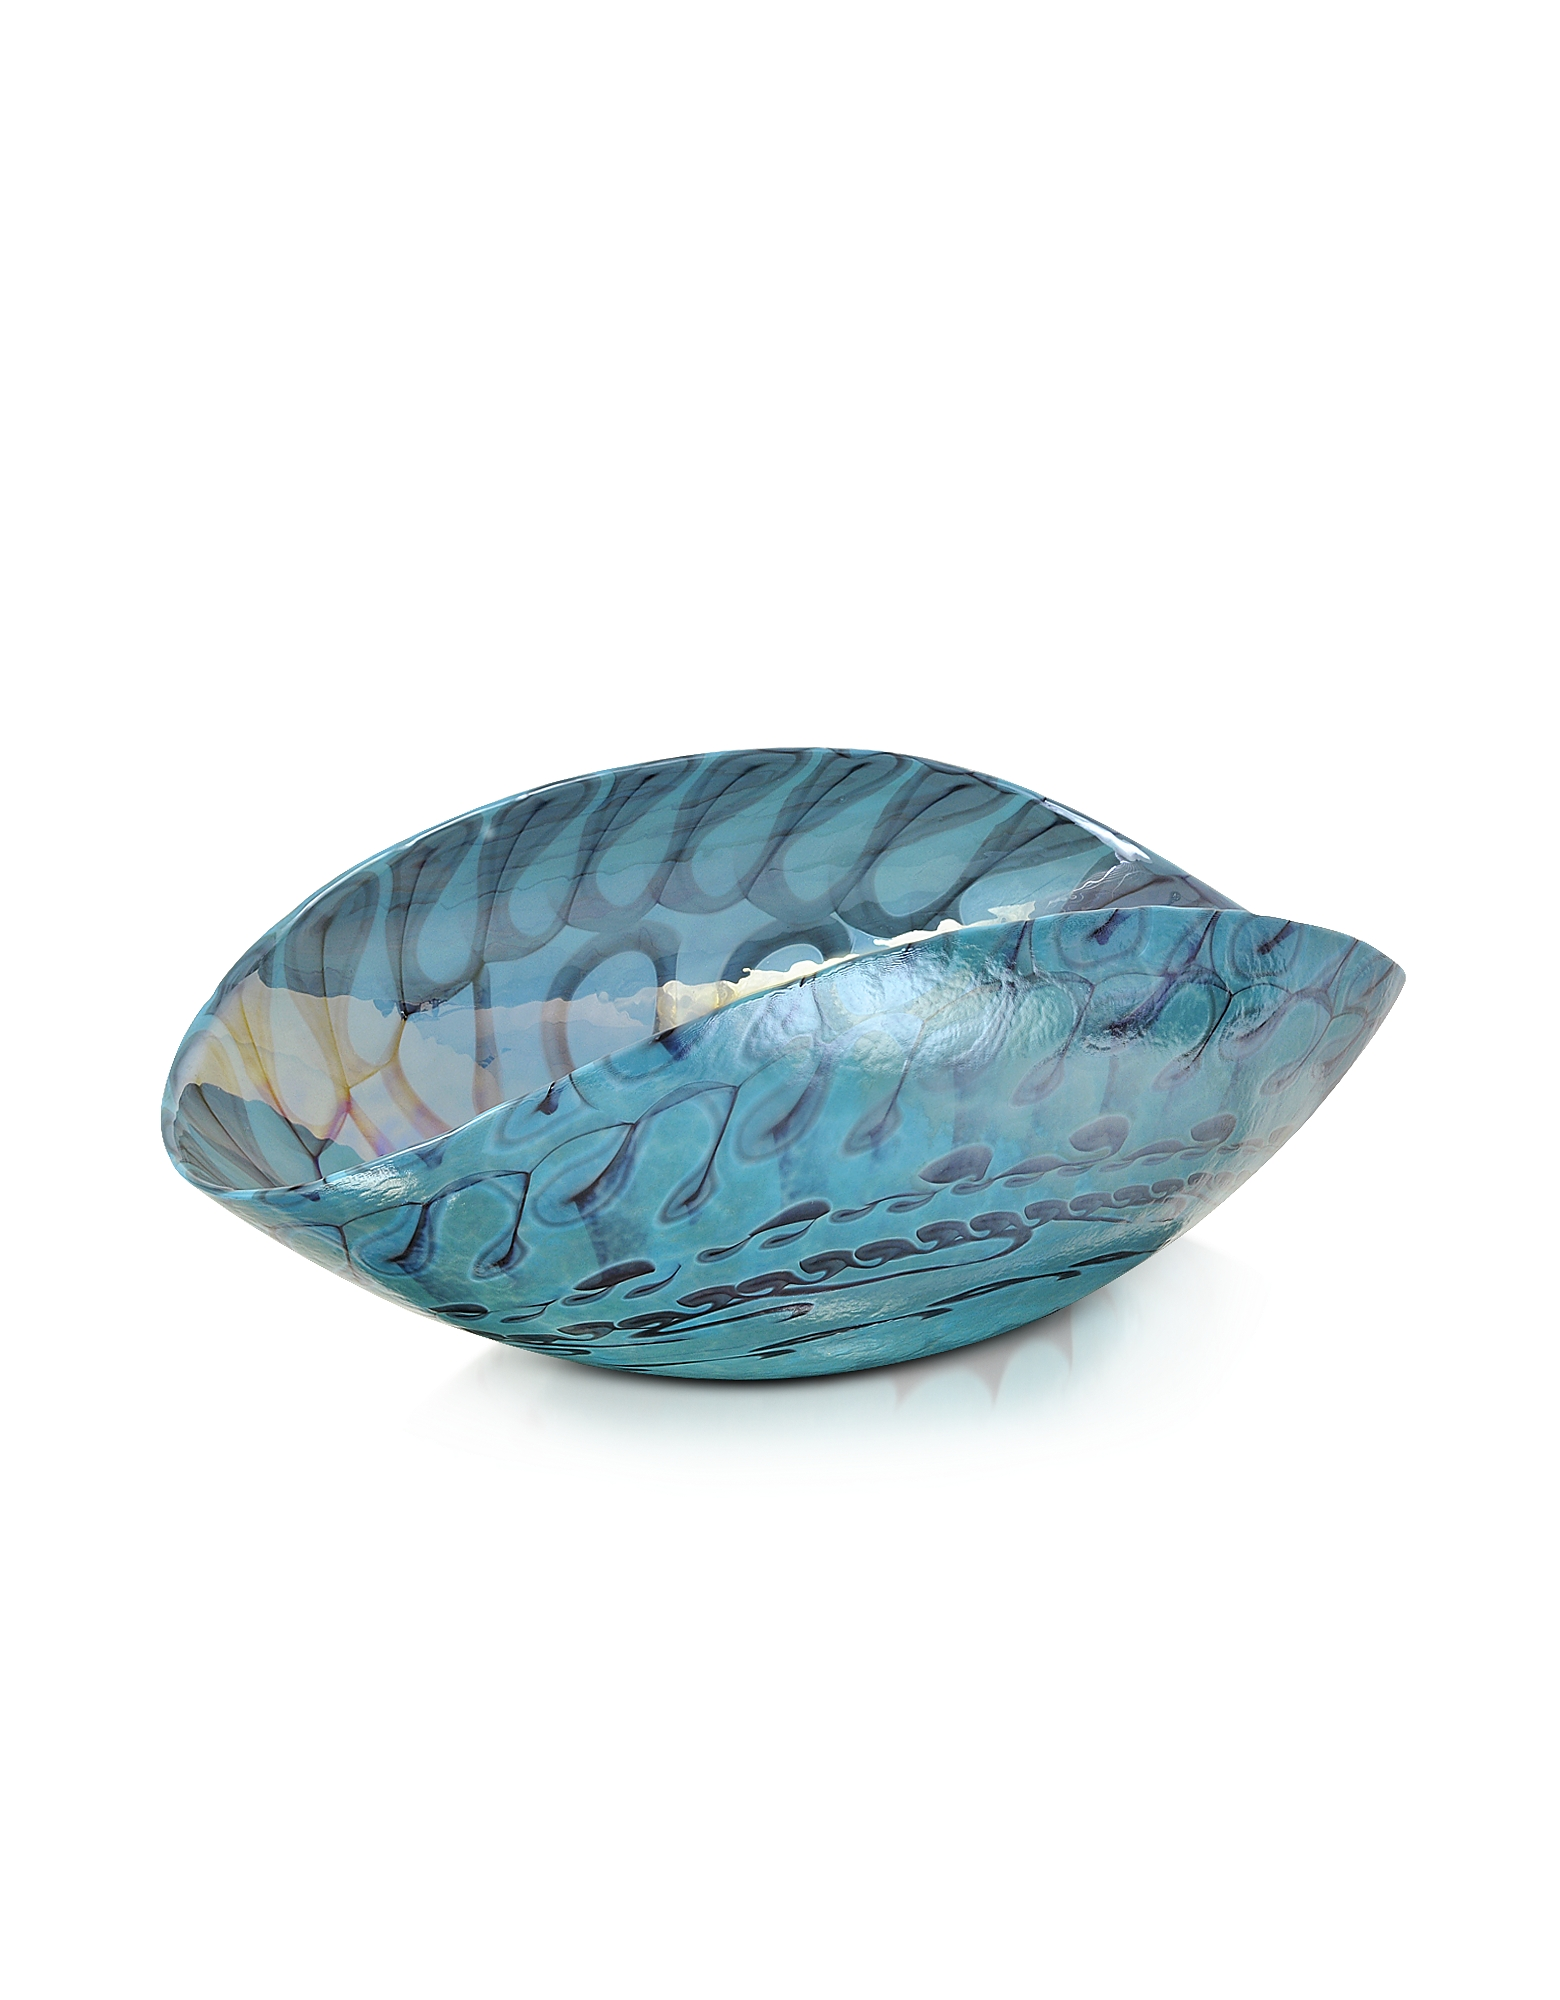 Yalos Murano Decor & Lighting, Belus - Medium Turquoise Folded Murano Glass Dish